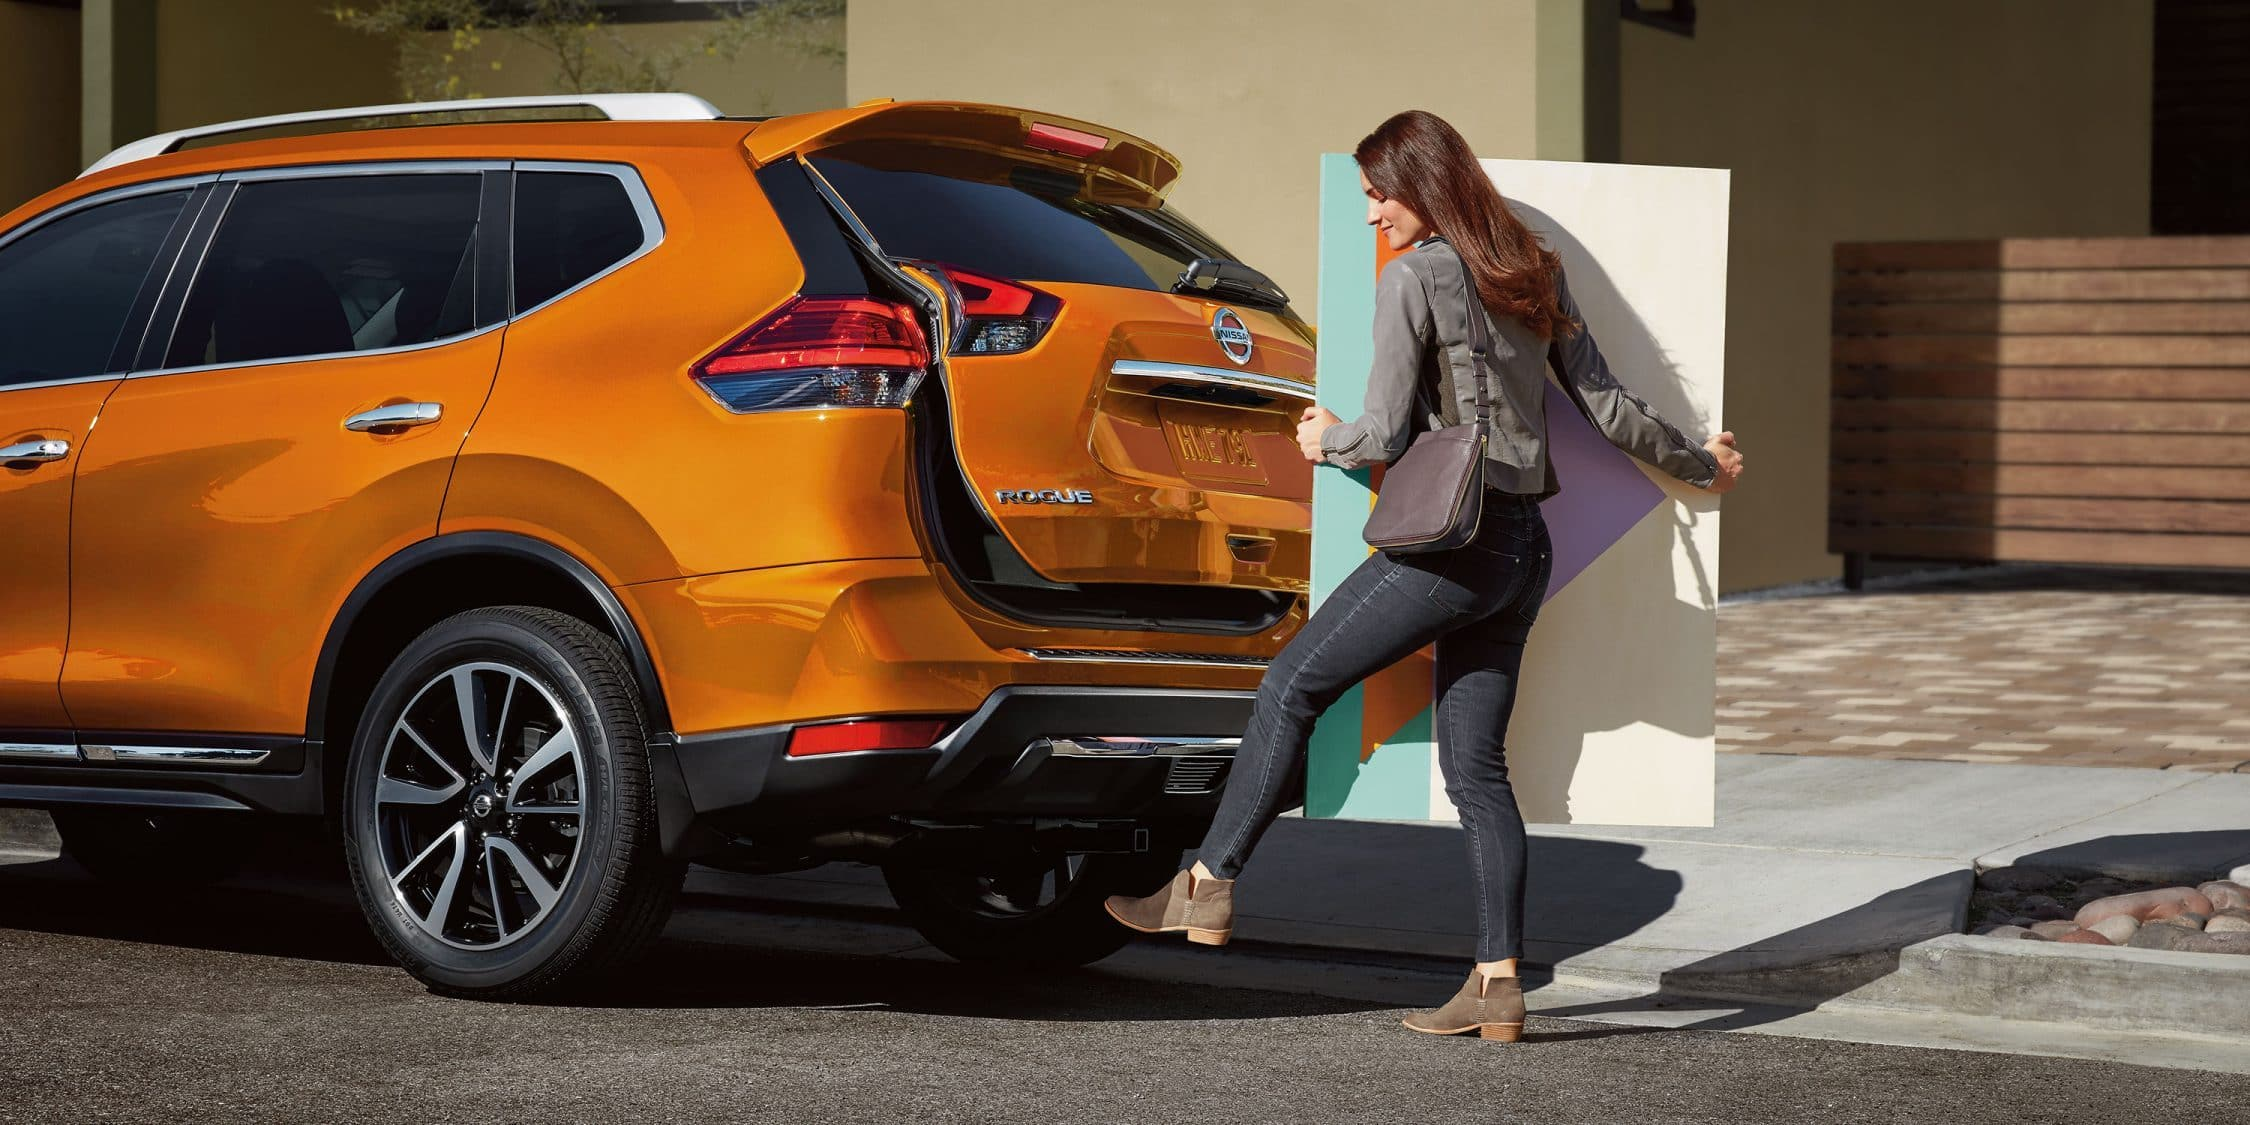 2018 Nissan Rogue Crossover SUVs In Orlando, FL Near Kissimmee